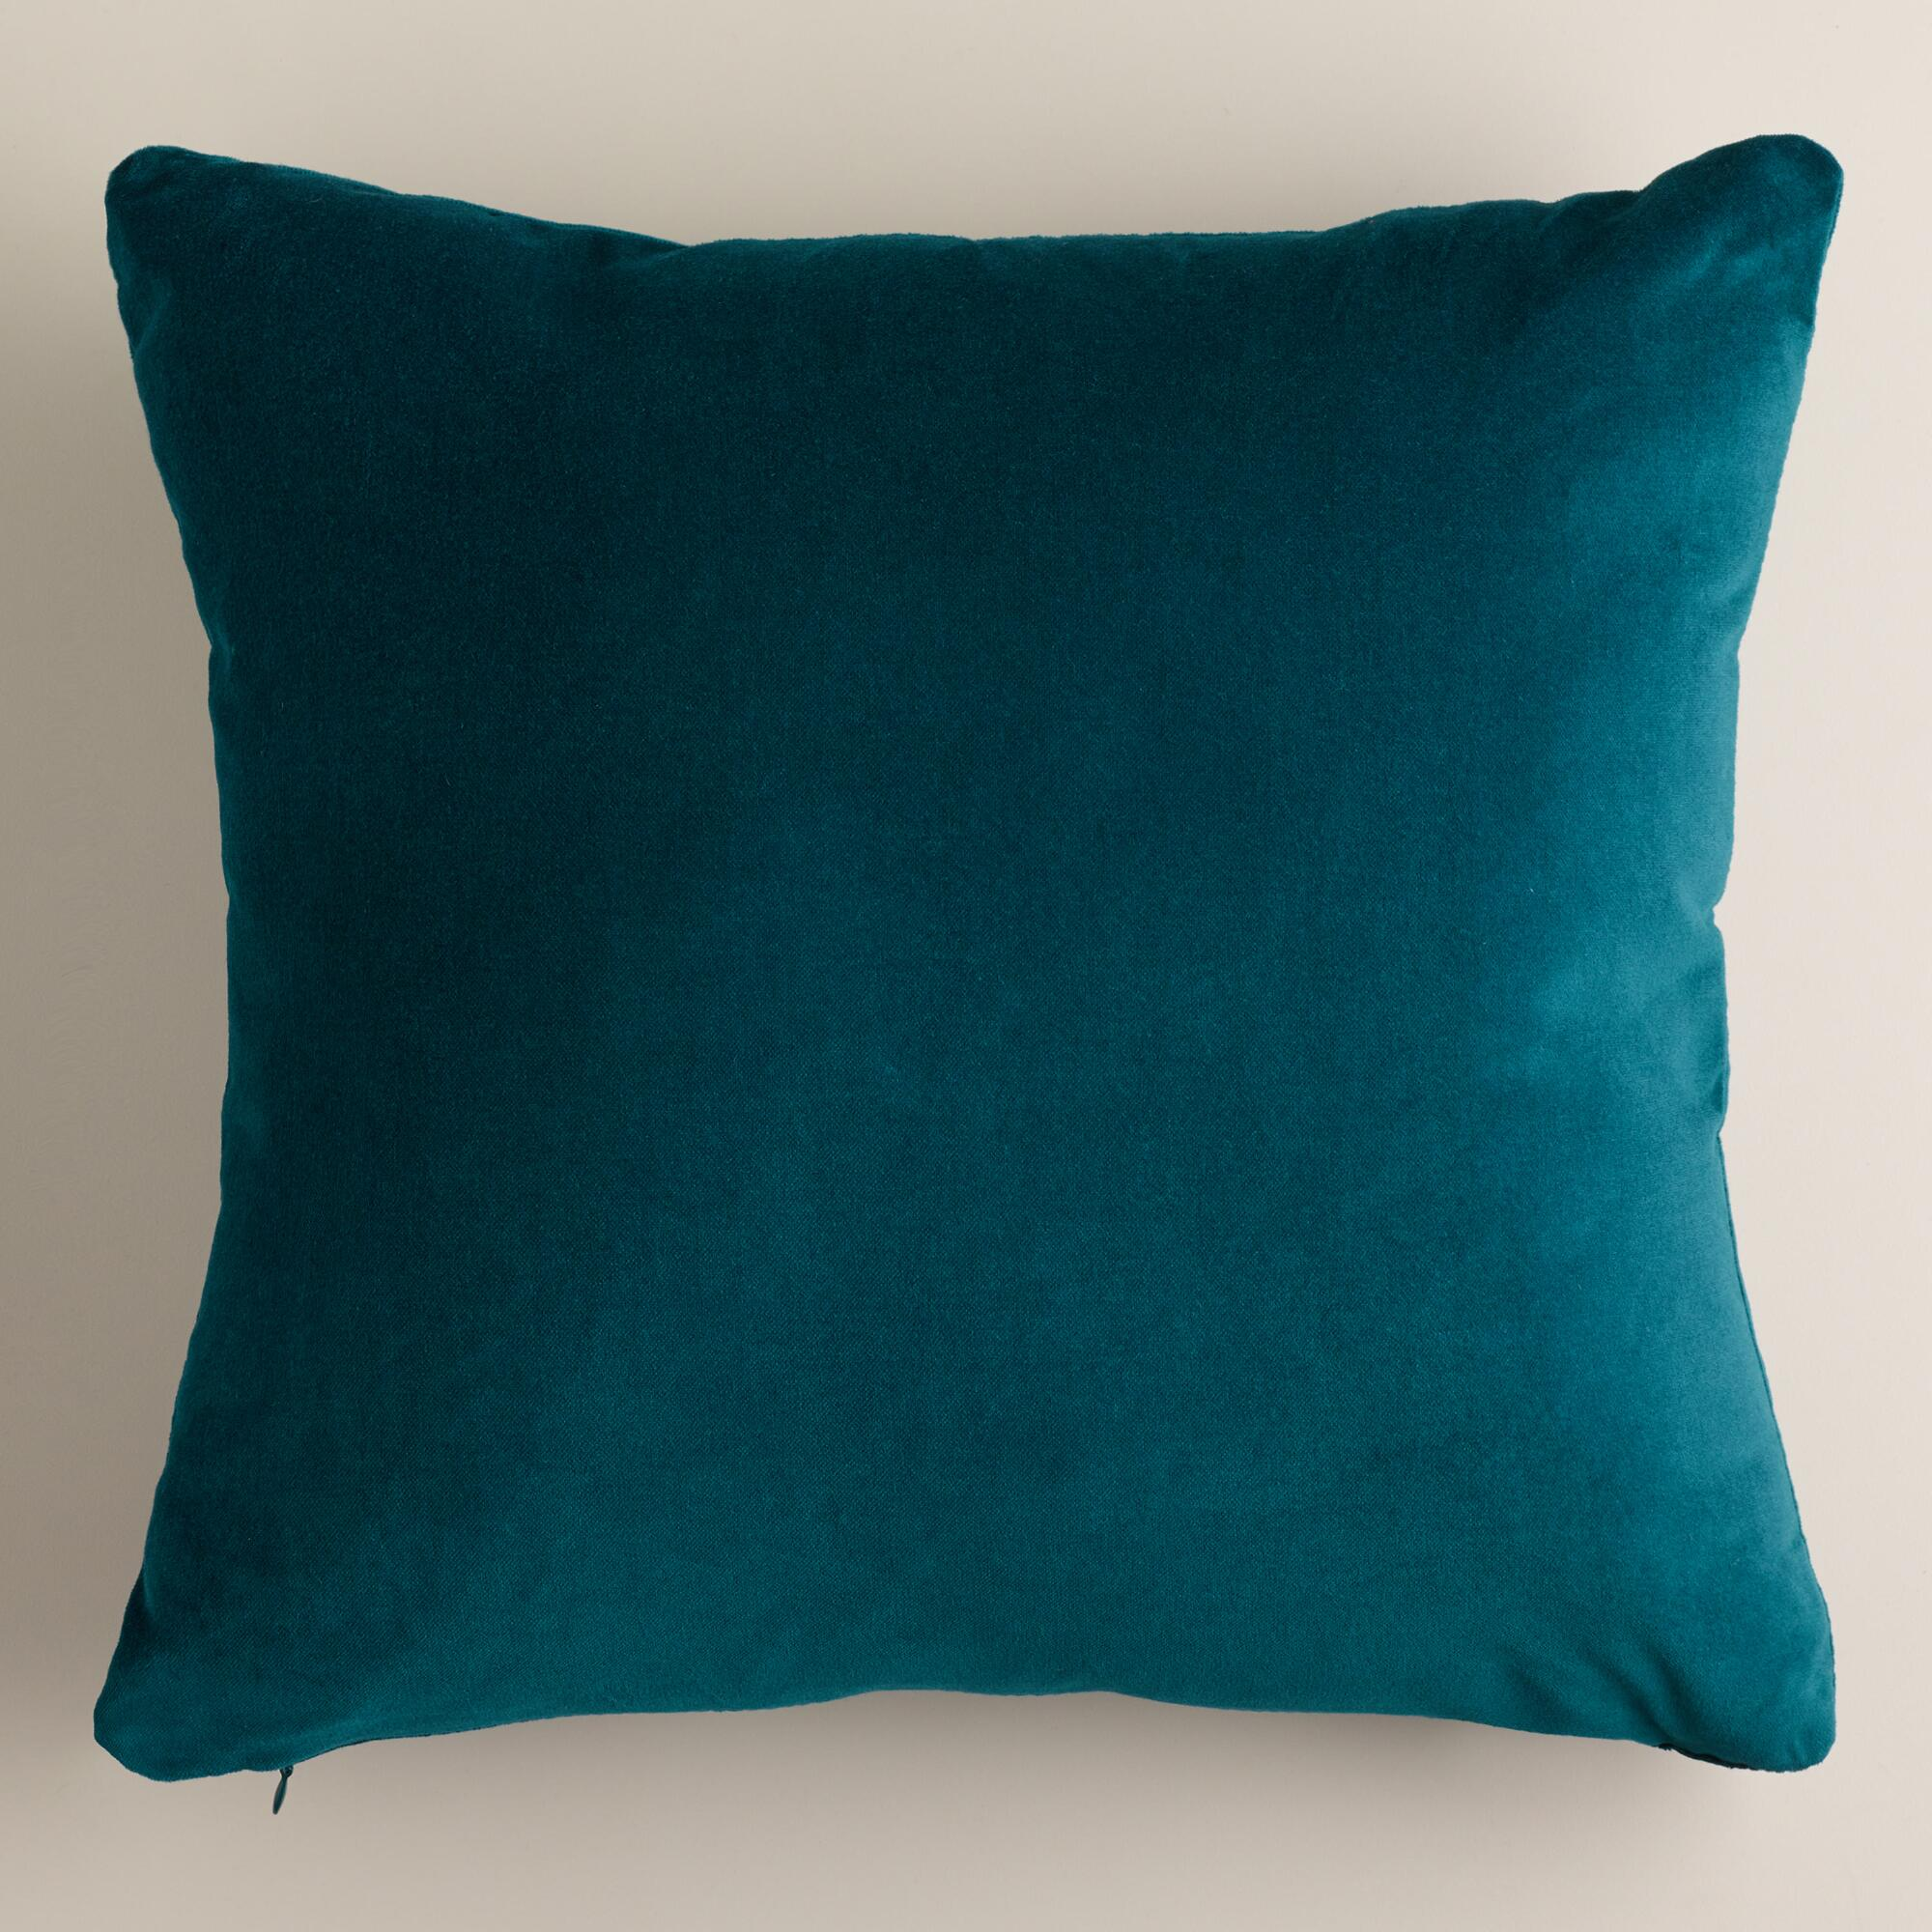 Decorative Pillows With Teal : Teal Velvet Throw Pillows World Market